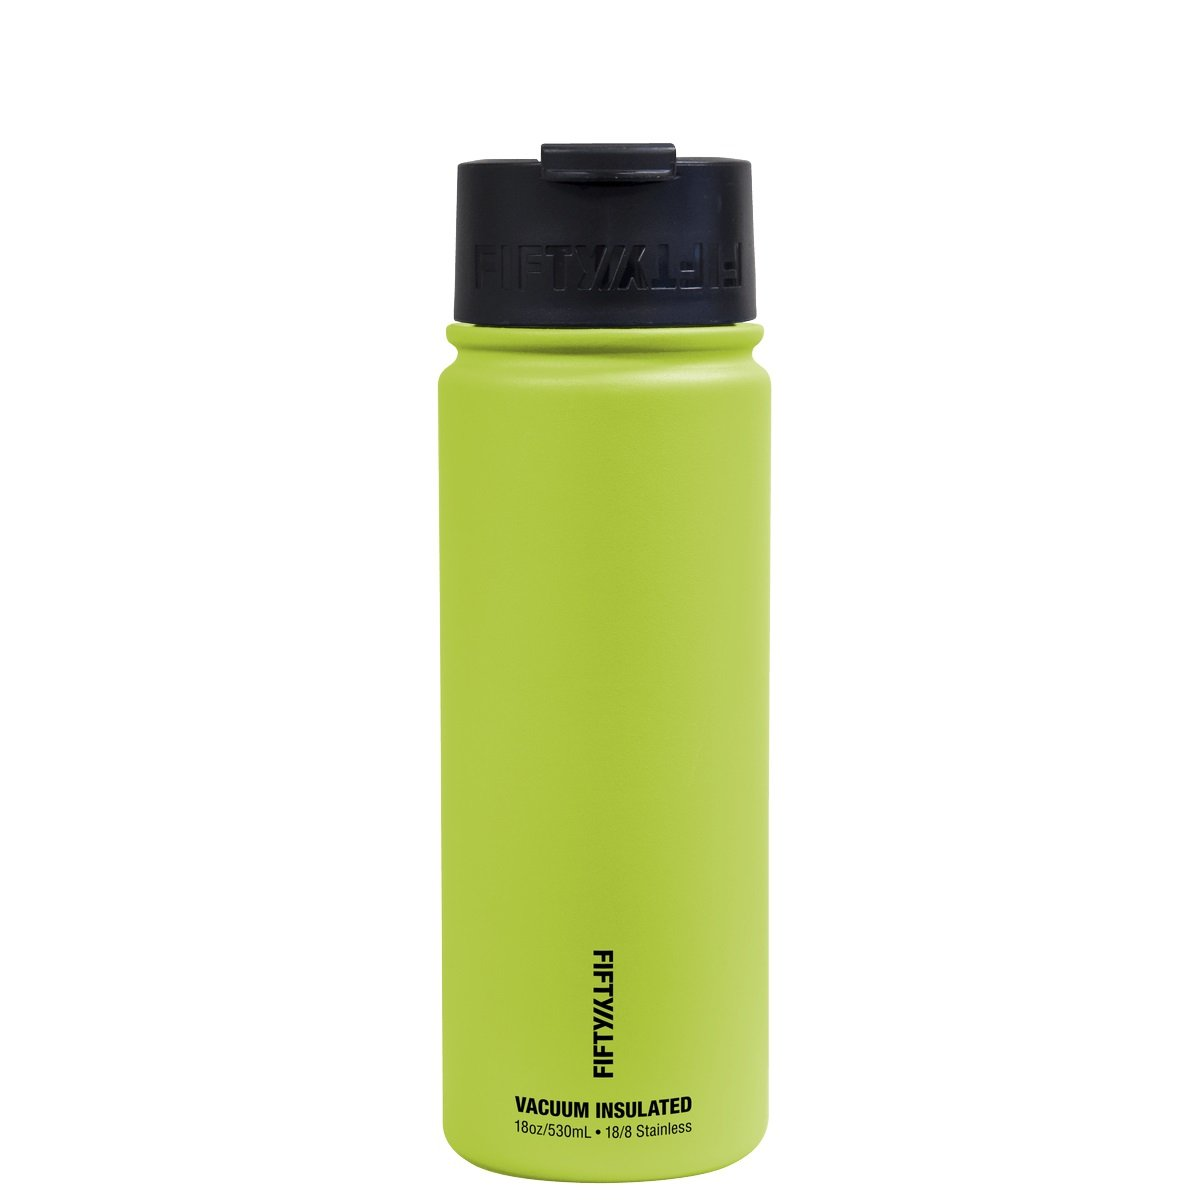 Wide Mouth/Flip Cap 1 Pack FIFTY//FIFTY V18004LM0 18oz Lime Double Wall Vacuum Insulated Stainless Steel Water Bottle//Travel Coffee Mug,